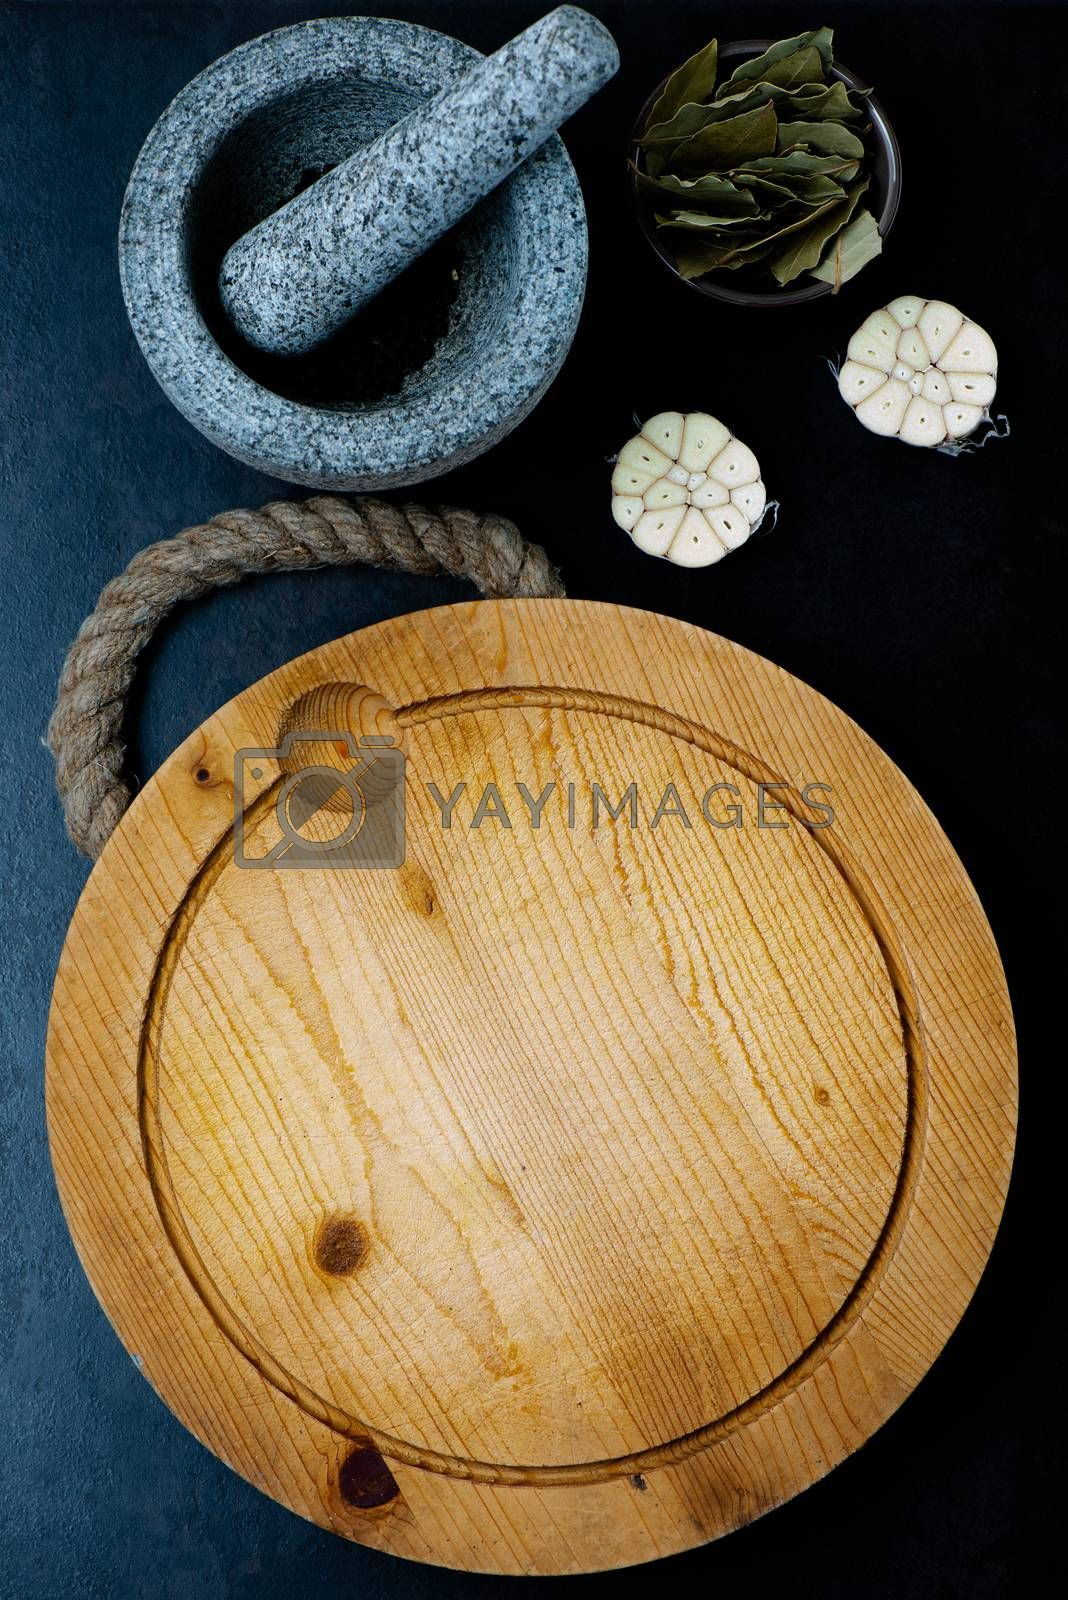 Stone mortar bowl with pestle, garlic, bay leaf and wooden cutting board on stone surface